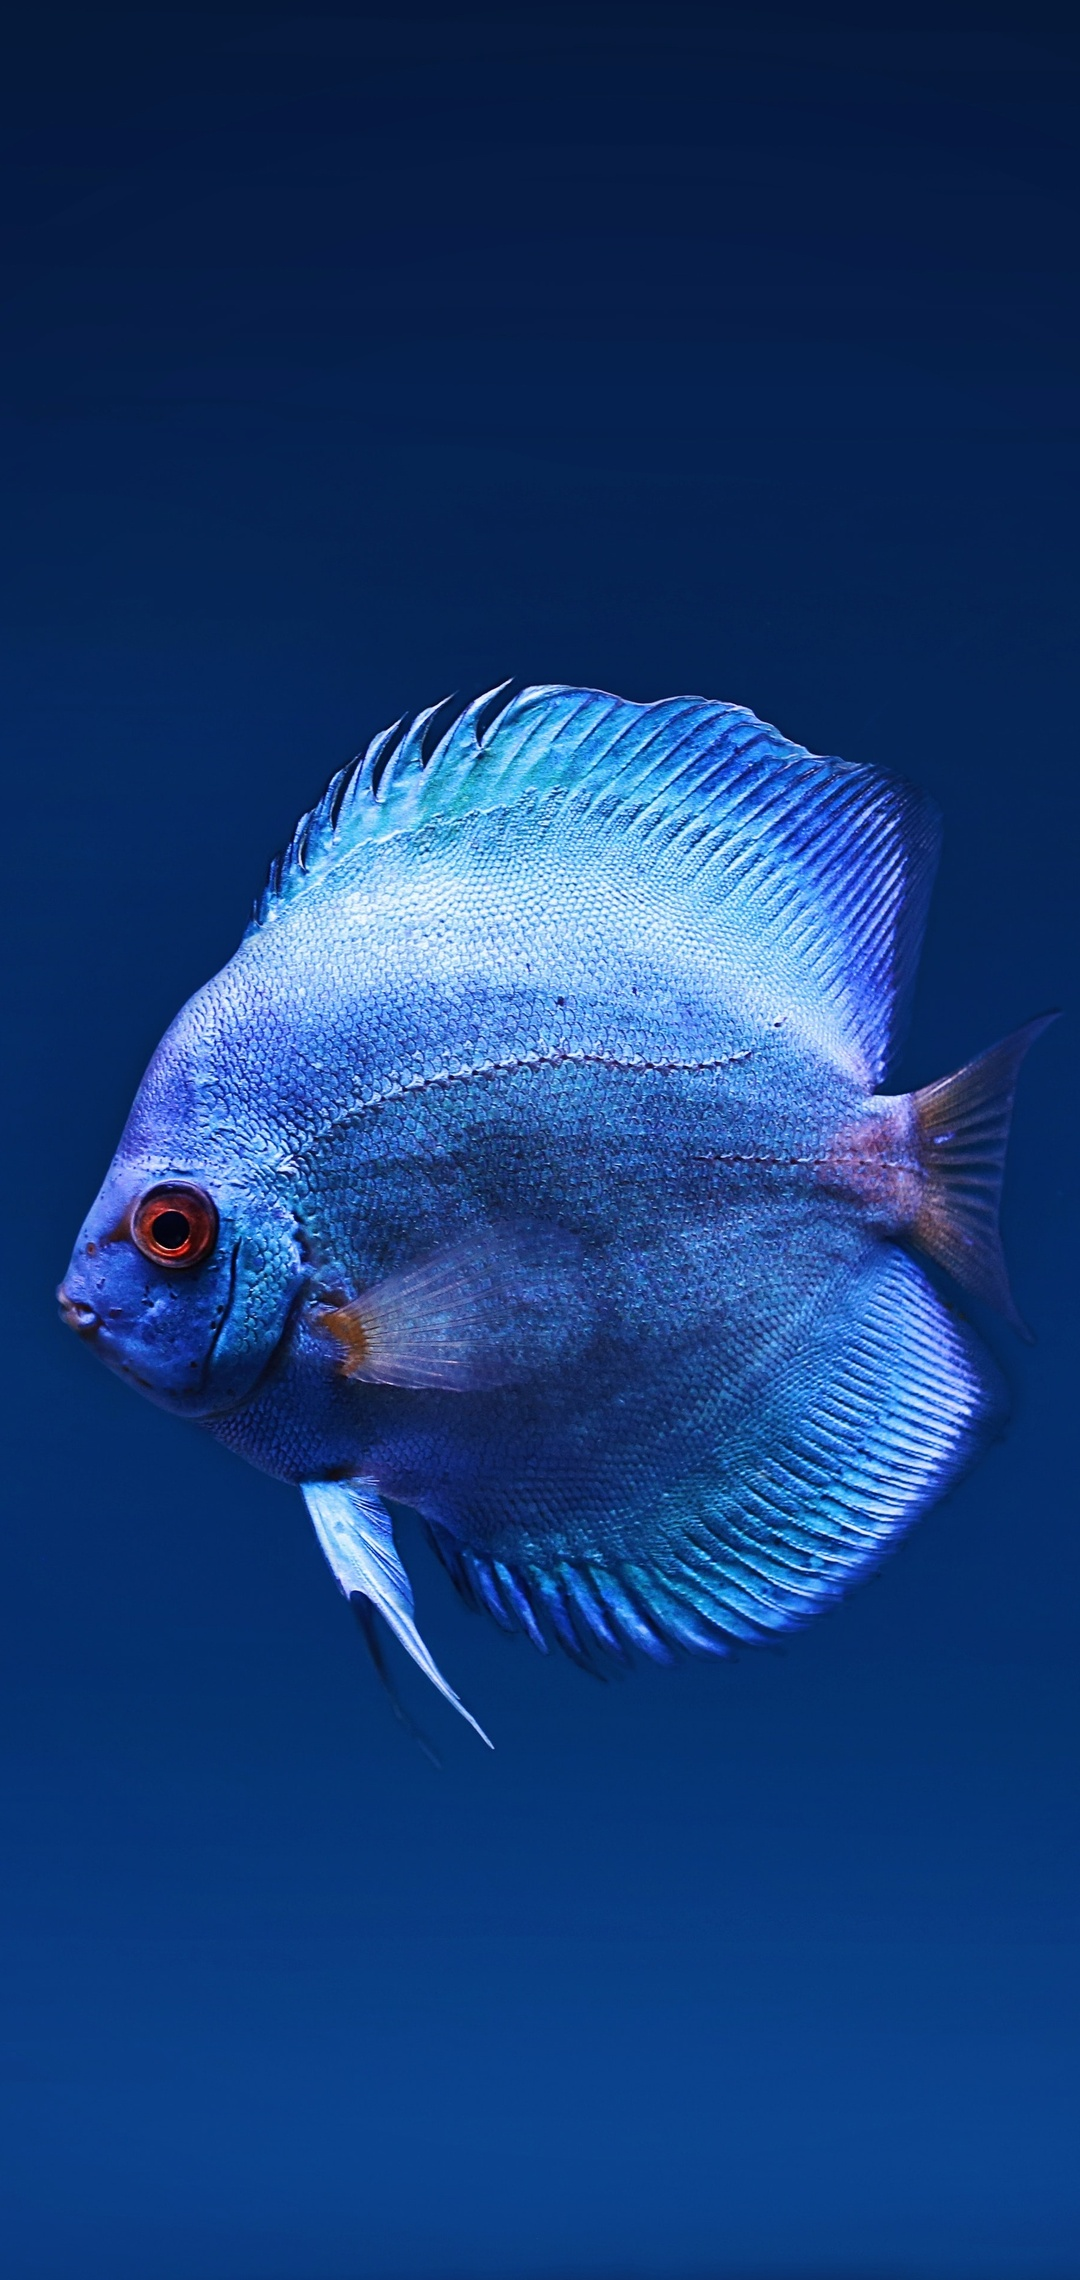 blue-discus-fish-x8.jpg